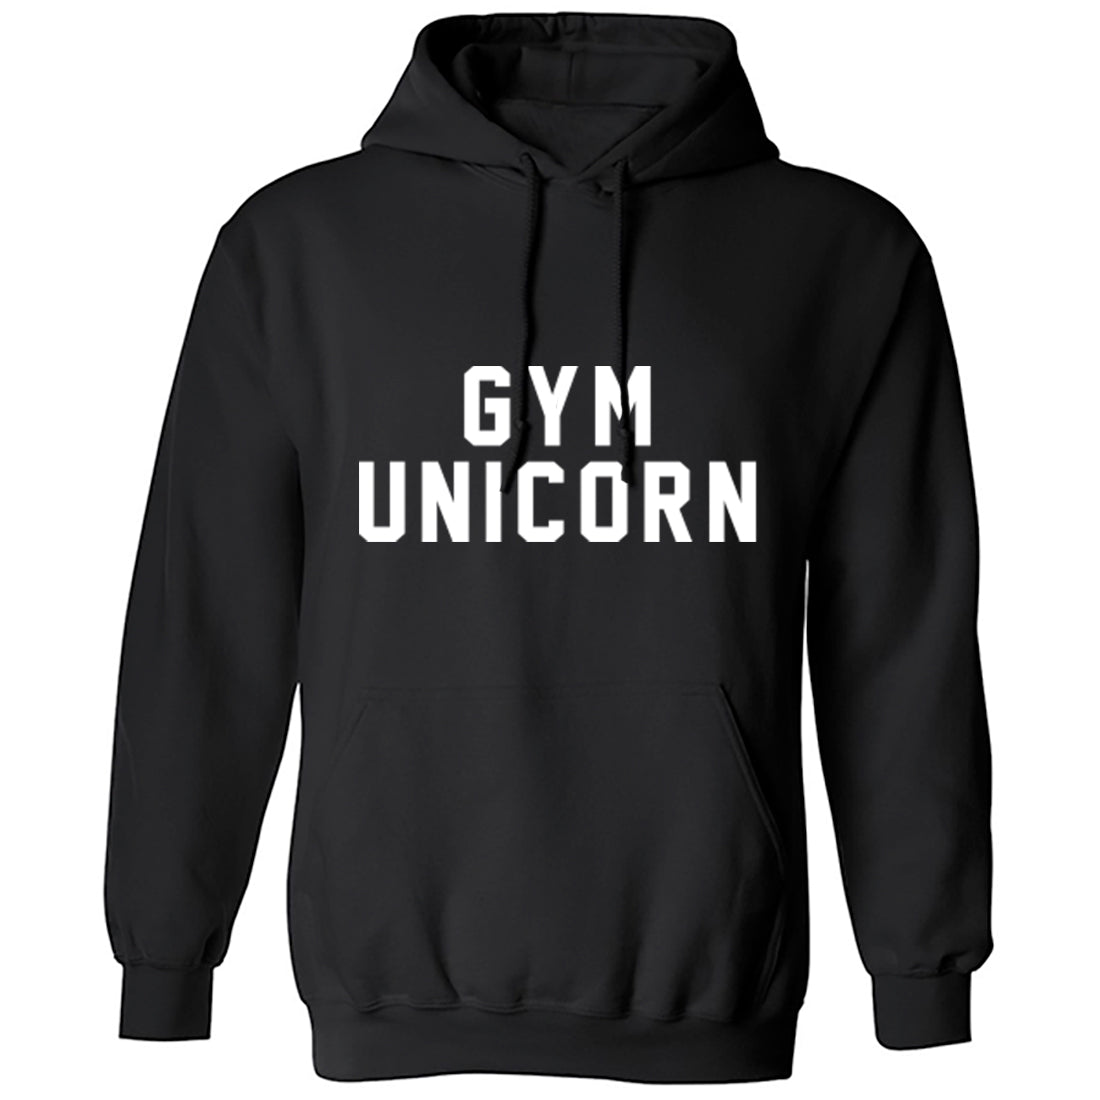 Gym Unicorn Unisex Hoodie K1447 - Illustrated Identity Ltd.